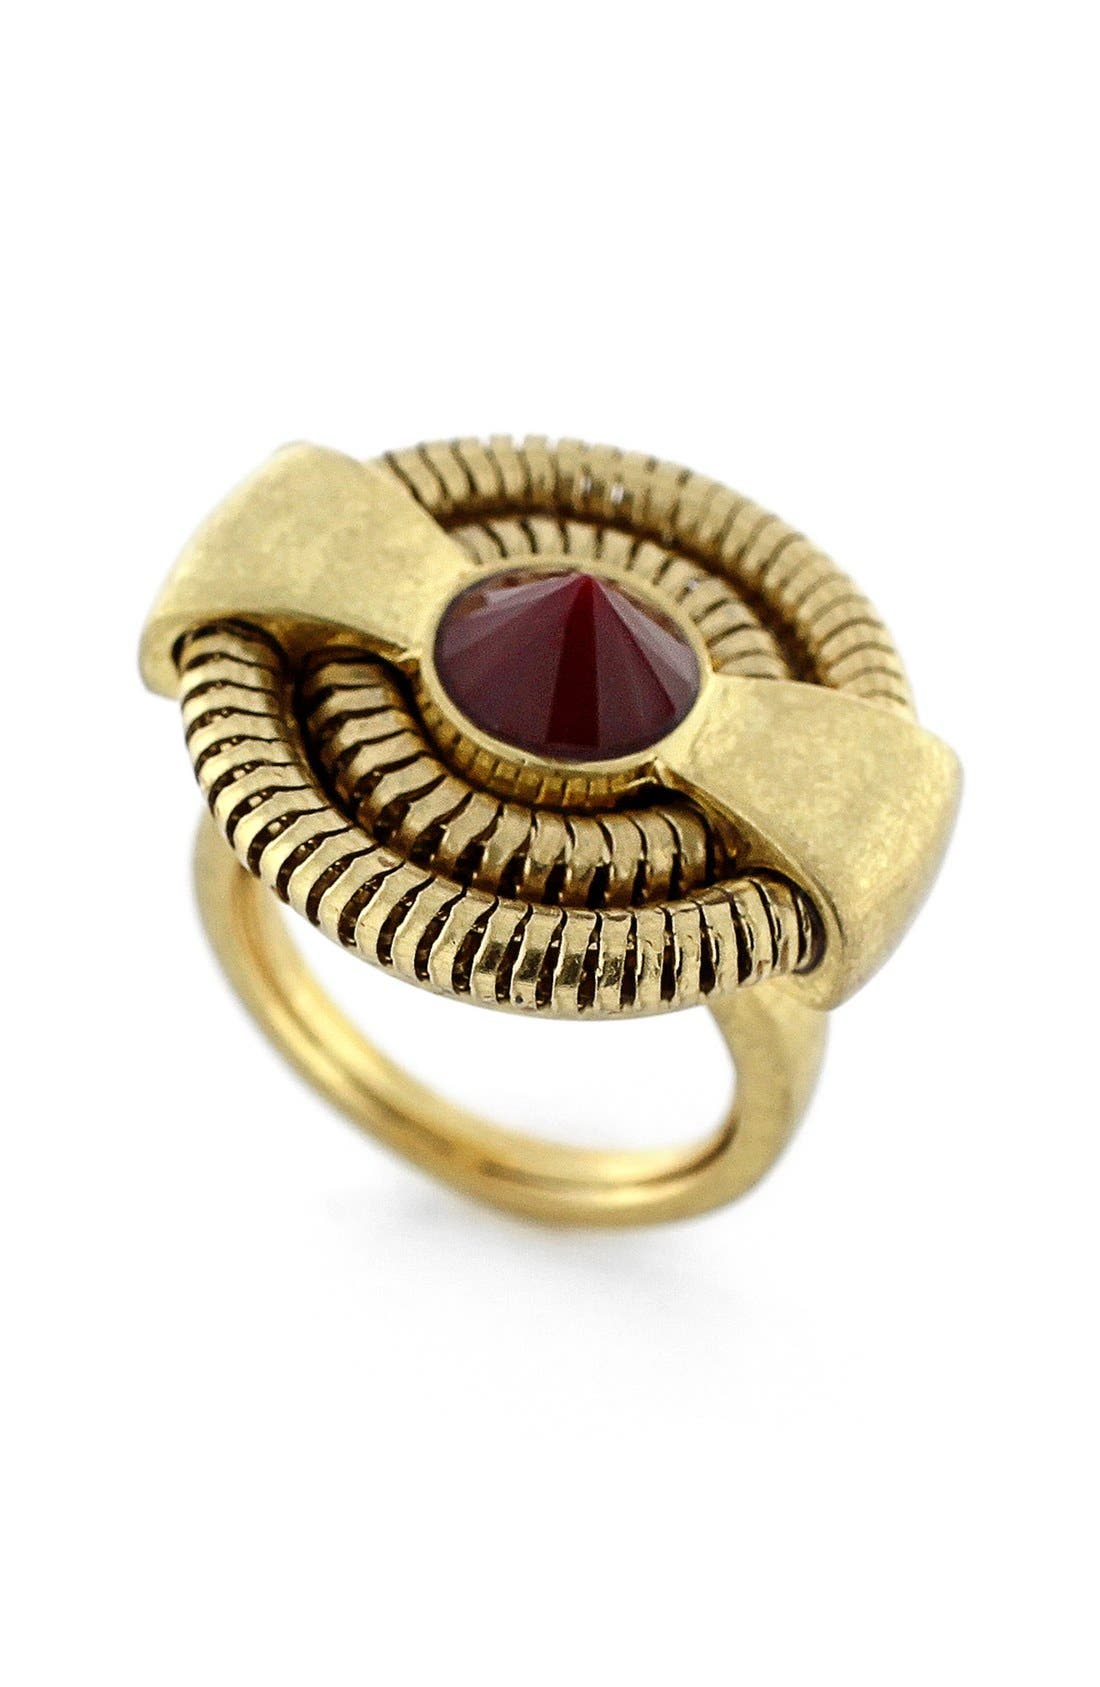 Main Image - Vince Camuto 'Belle of the Bazaar' Small Statement Ring